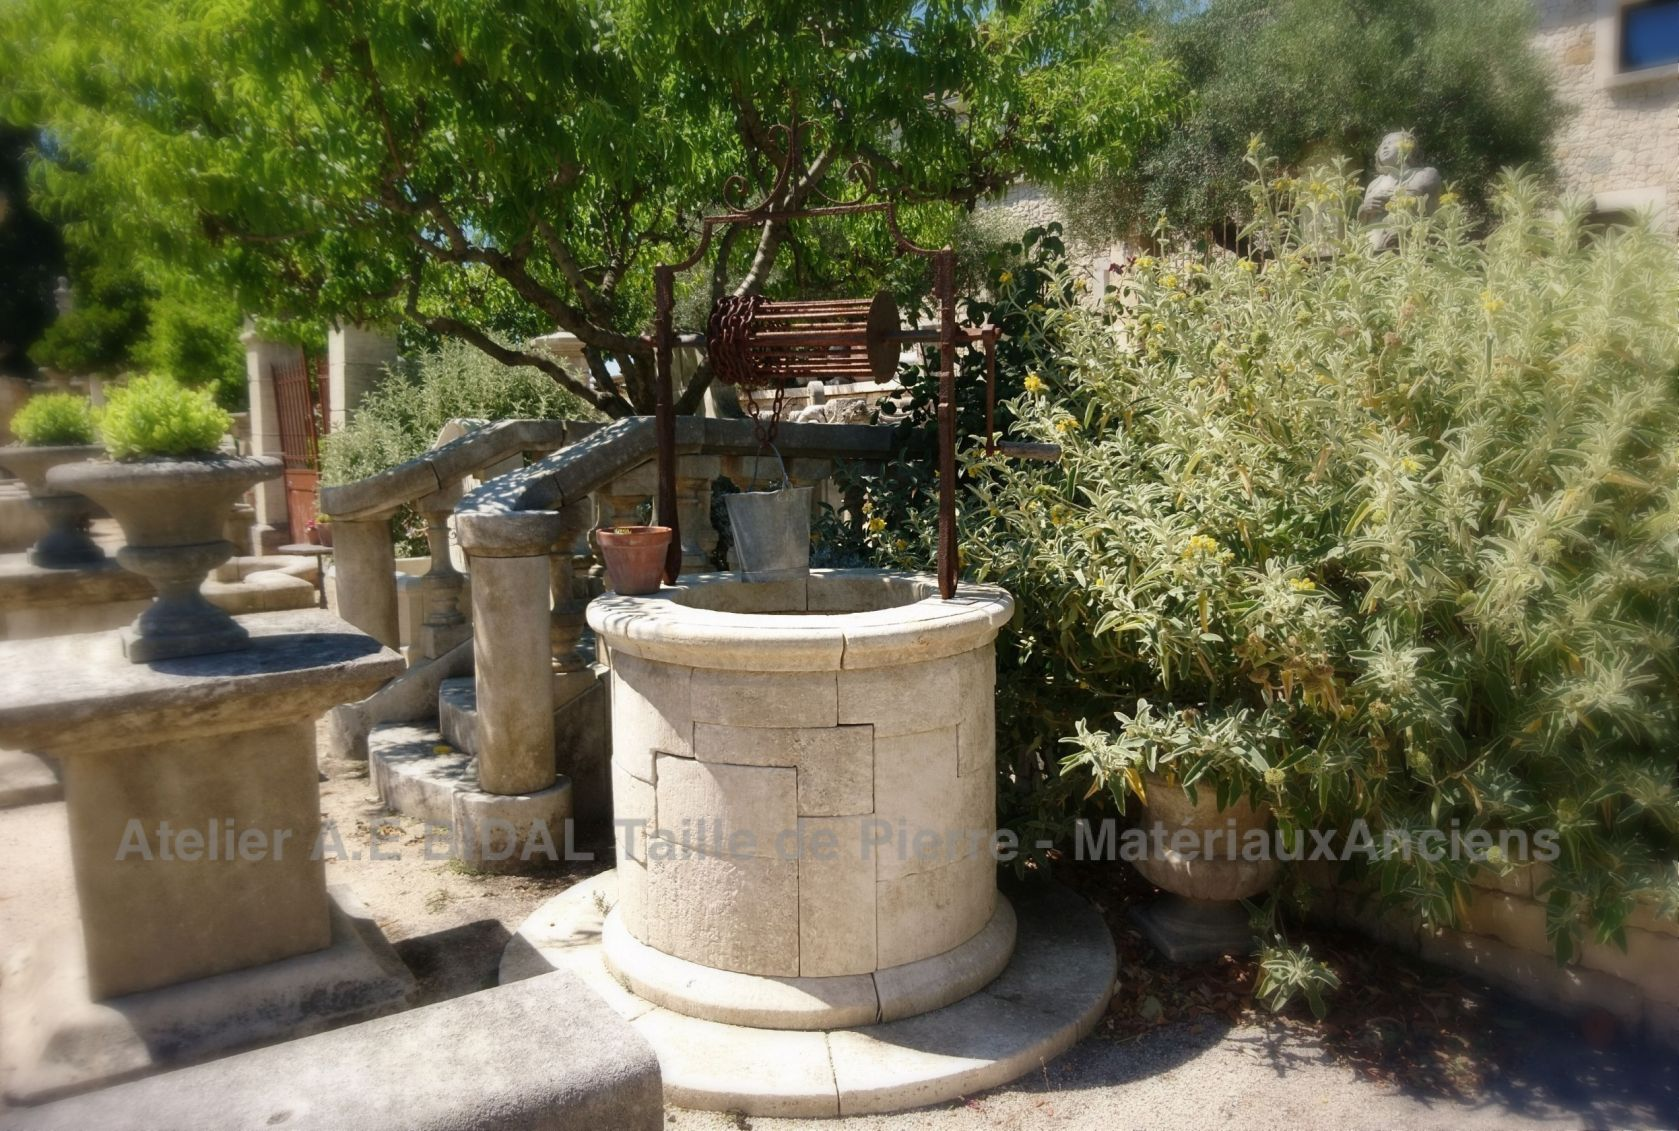 Here is a beautiful natural stone well made by Alain Bidal in his Atelier in Isle-sur-la-Sorgue.